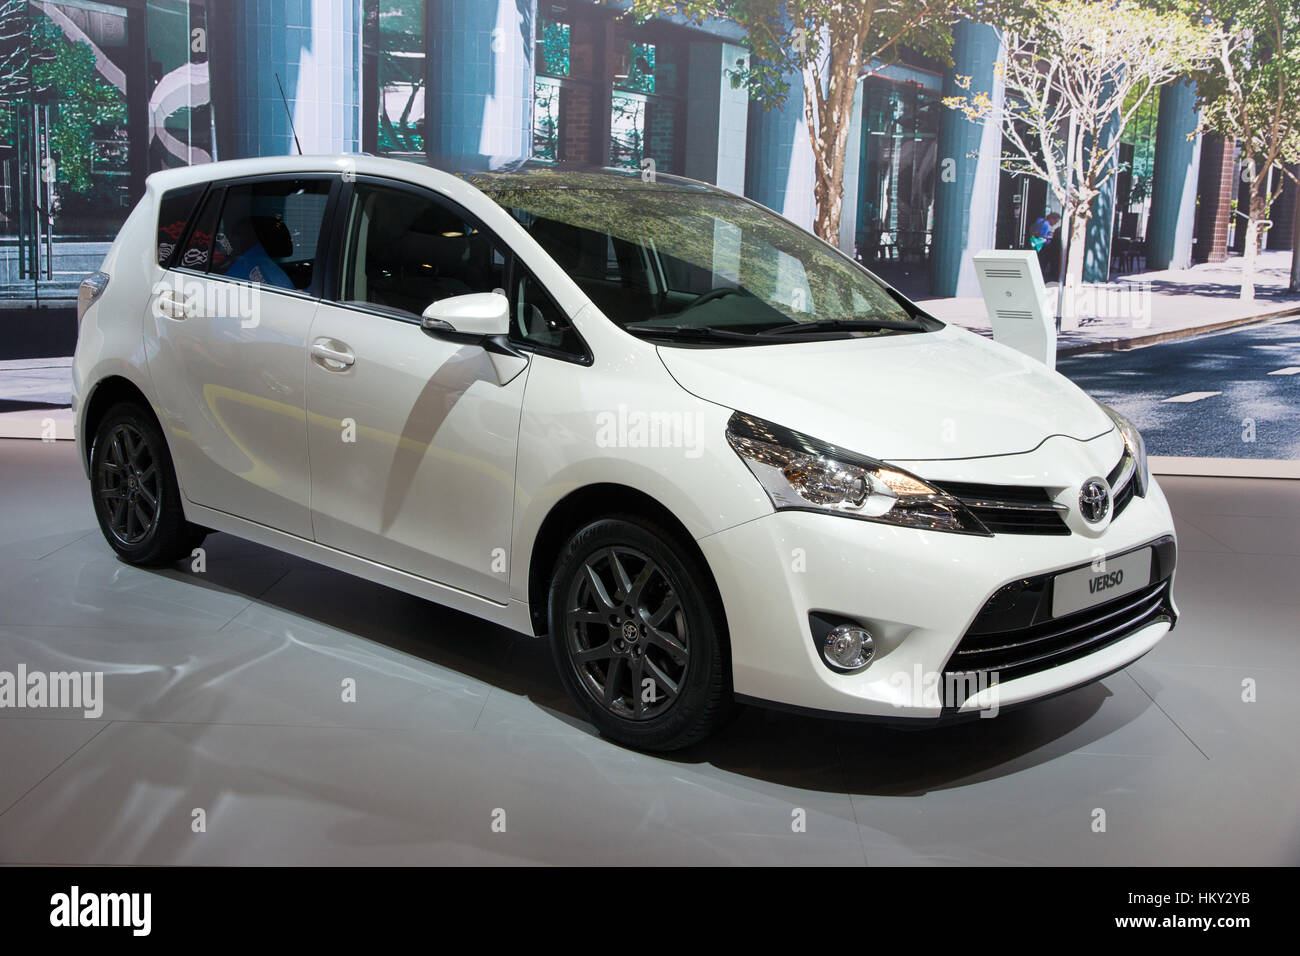 Toyota Verso Stock Photos Images Alamy 2015 Interior Brussels Jan 12 2016 On Display At The Motor Show